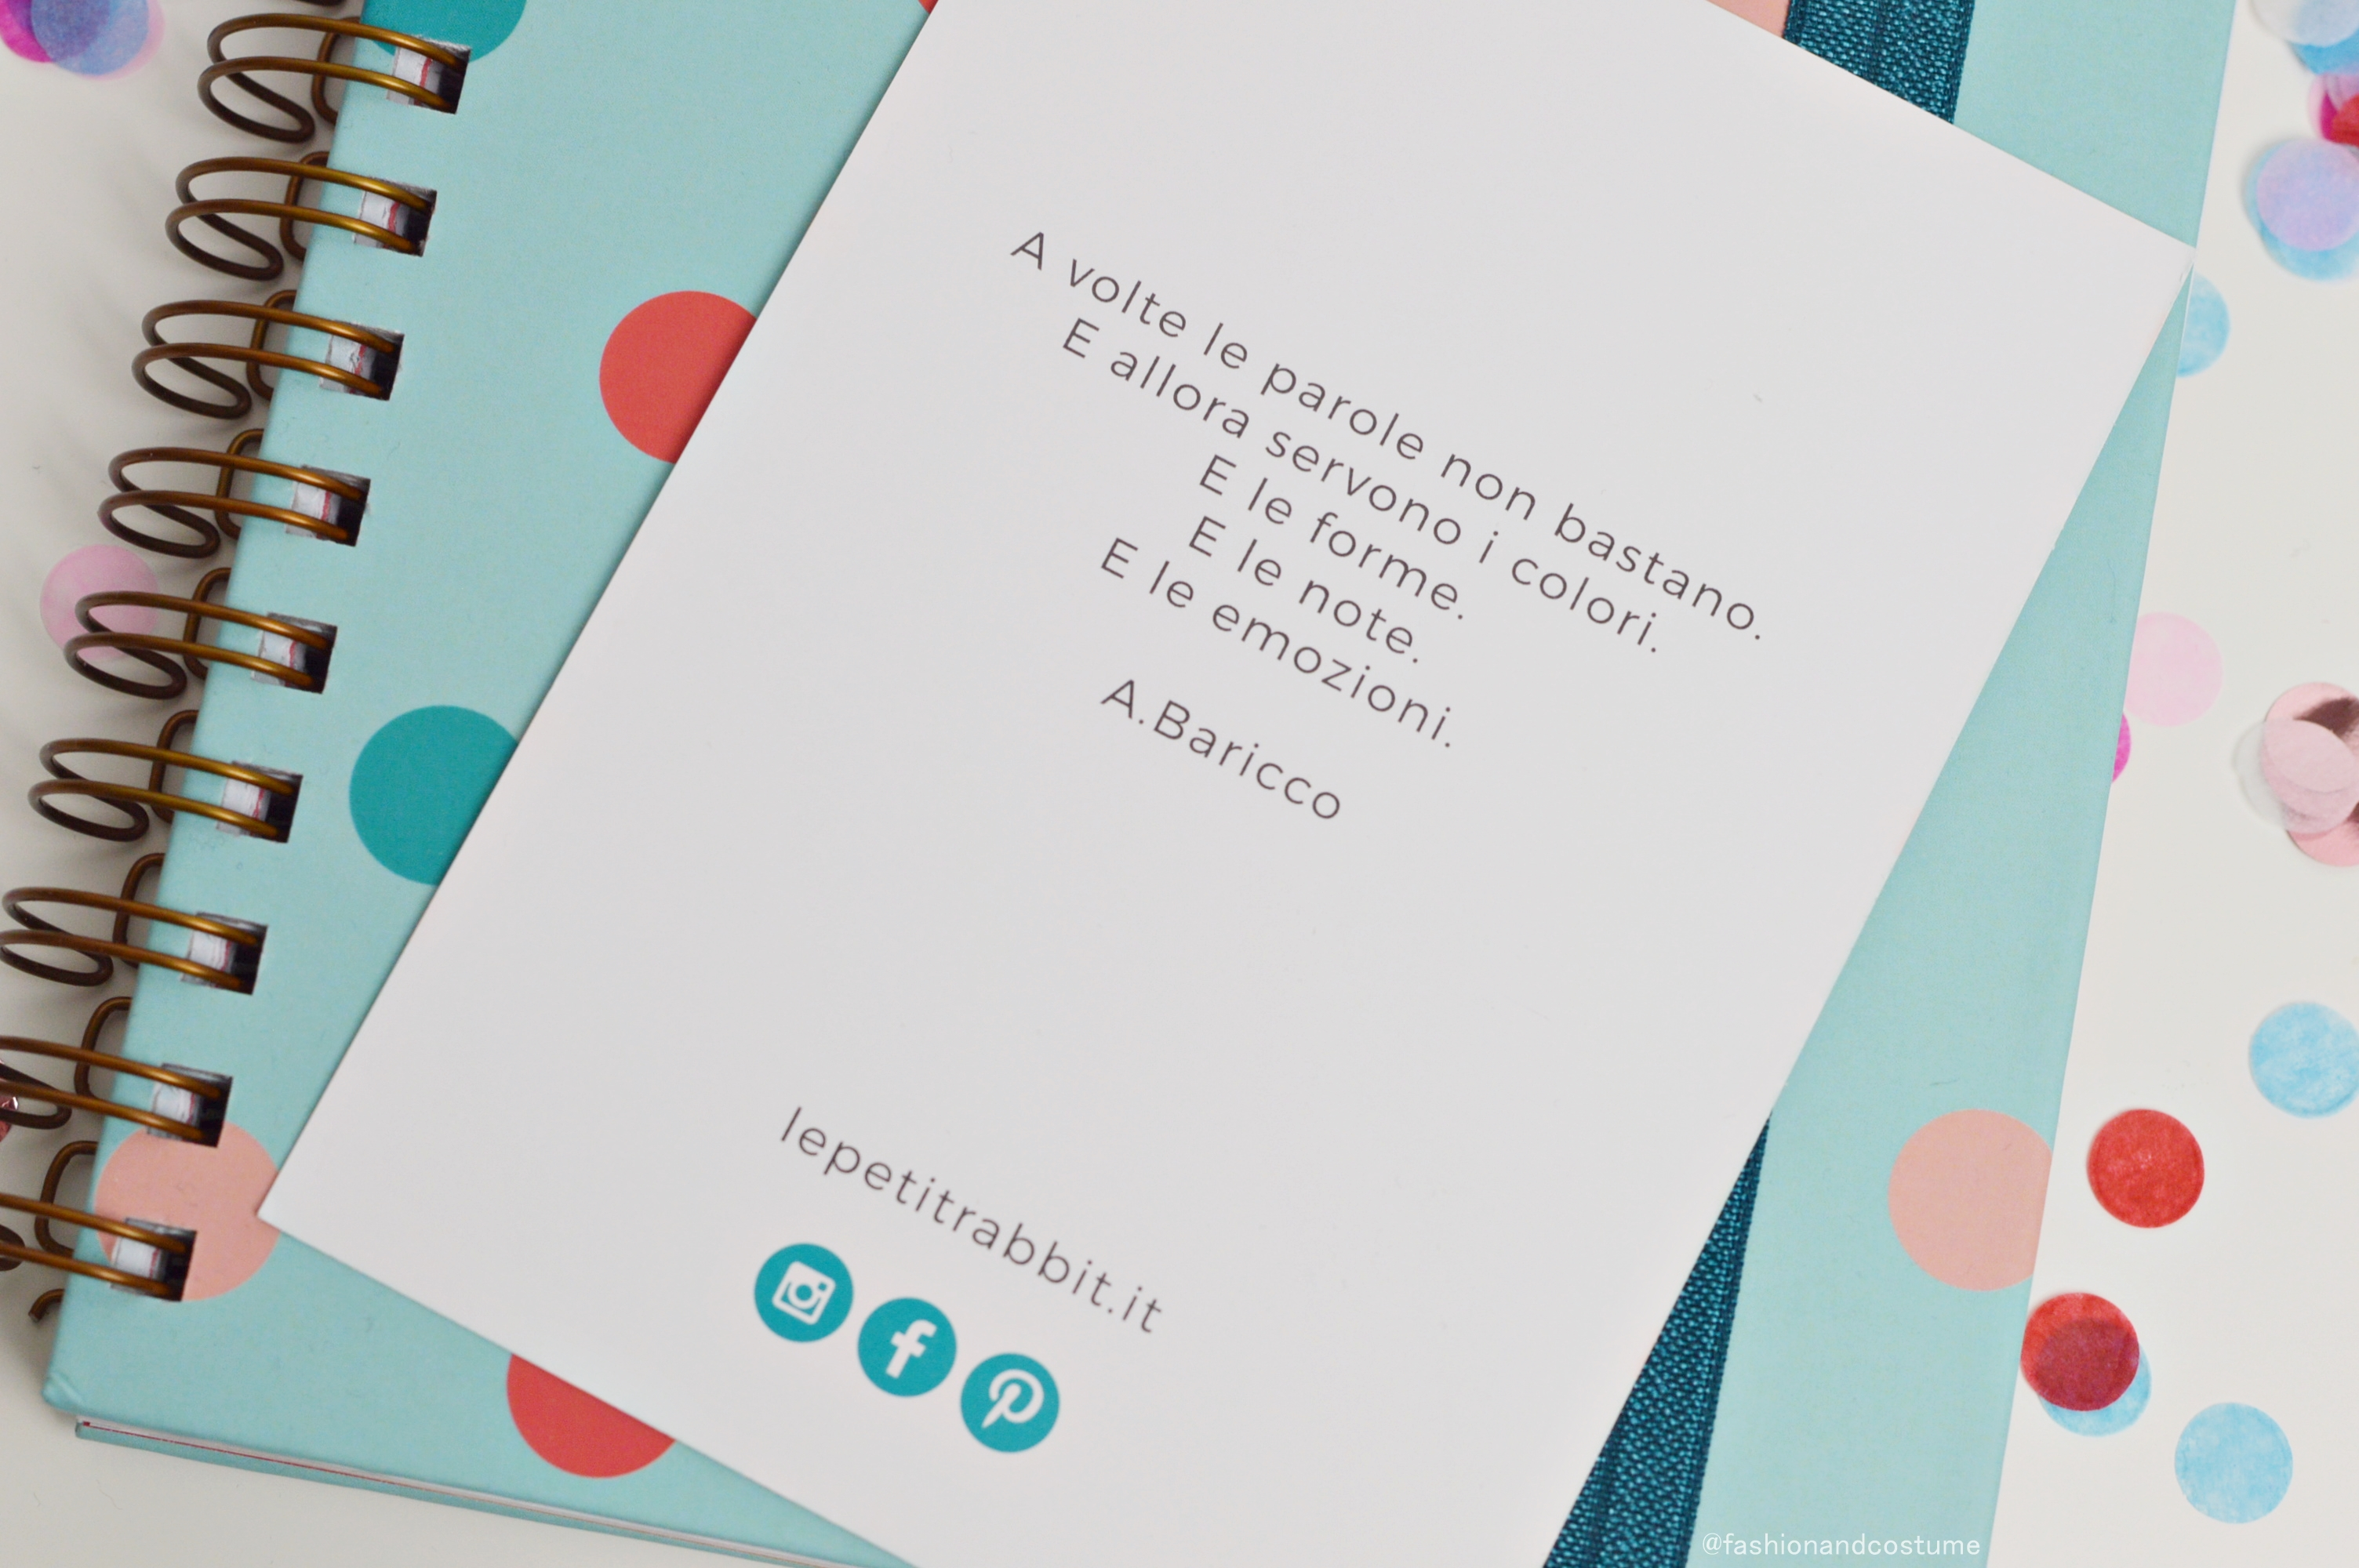 agenda-planner-2019-settimanale-weekly-giulia-lepetitrabbit-le-petit-rabbit-fashion-and-costume-fashionandcostume-graphic-designer-sticker-blogger